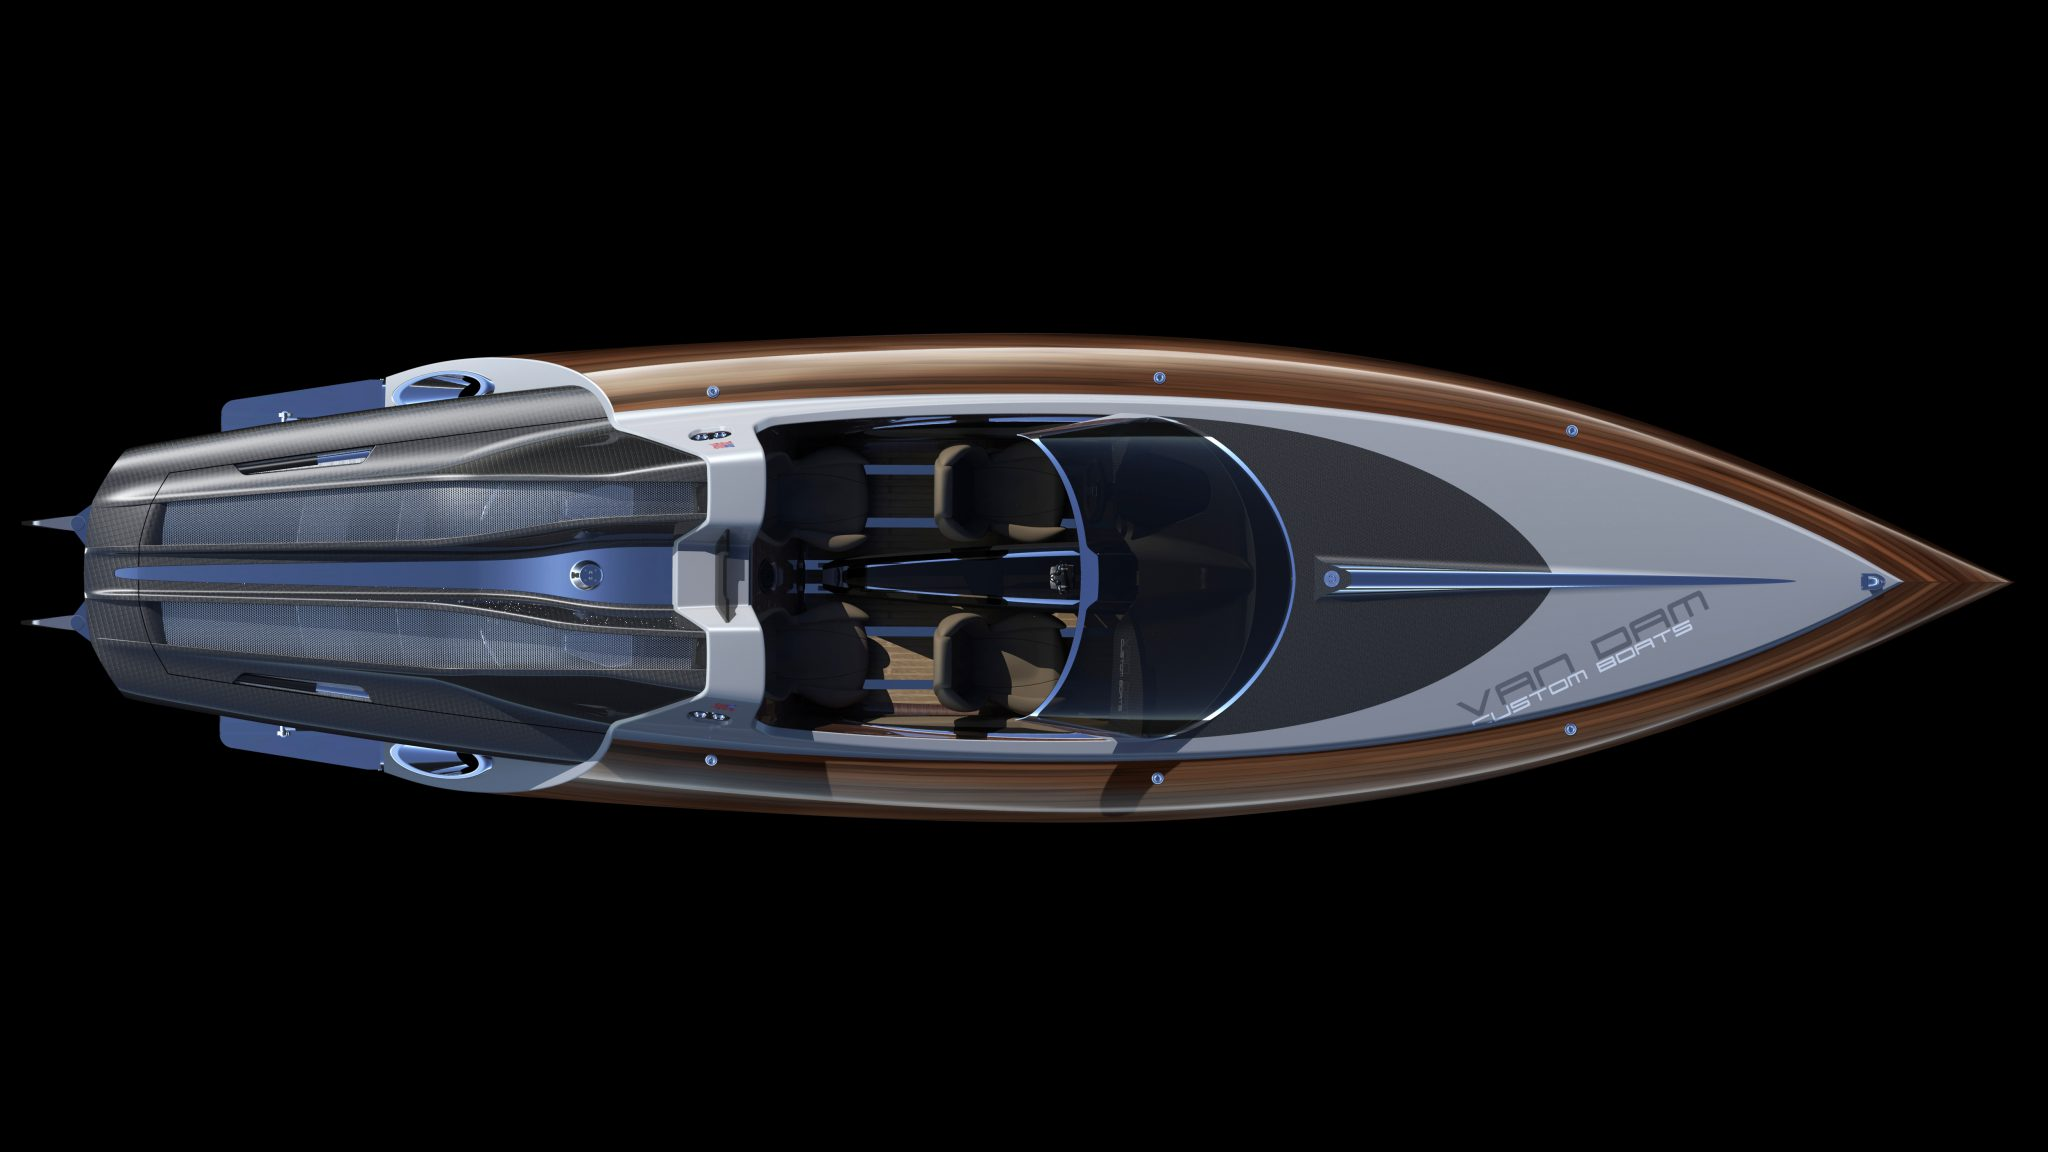 Over view of concept boat